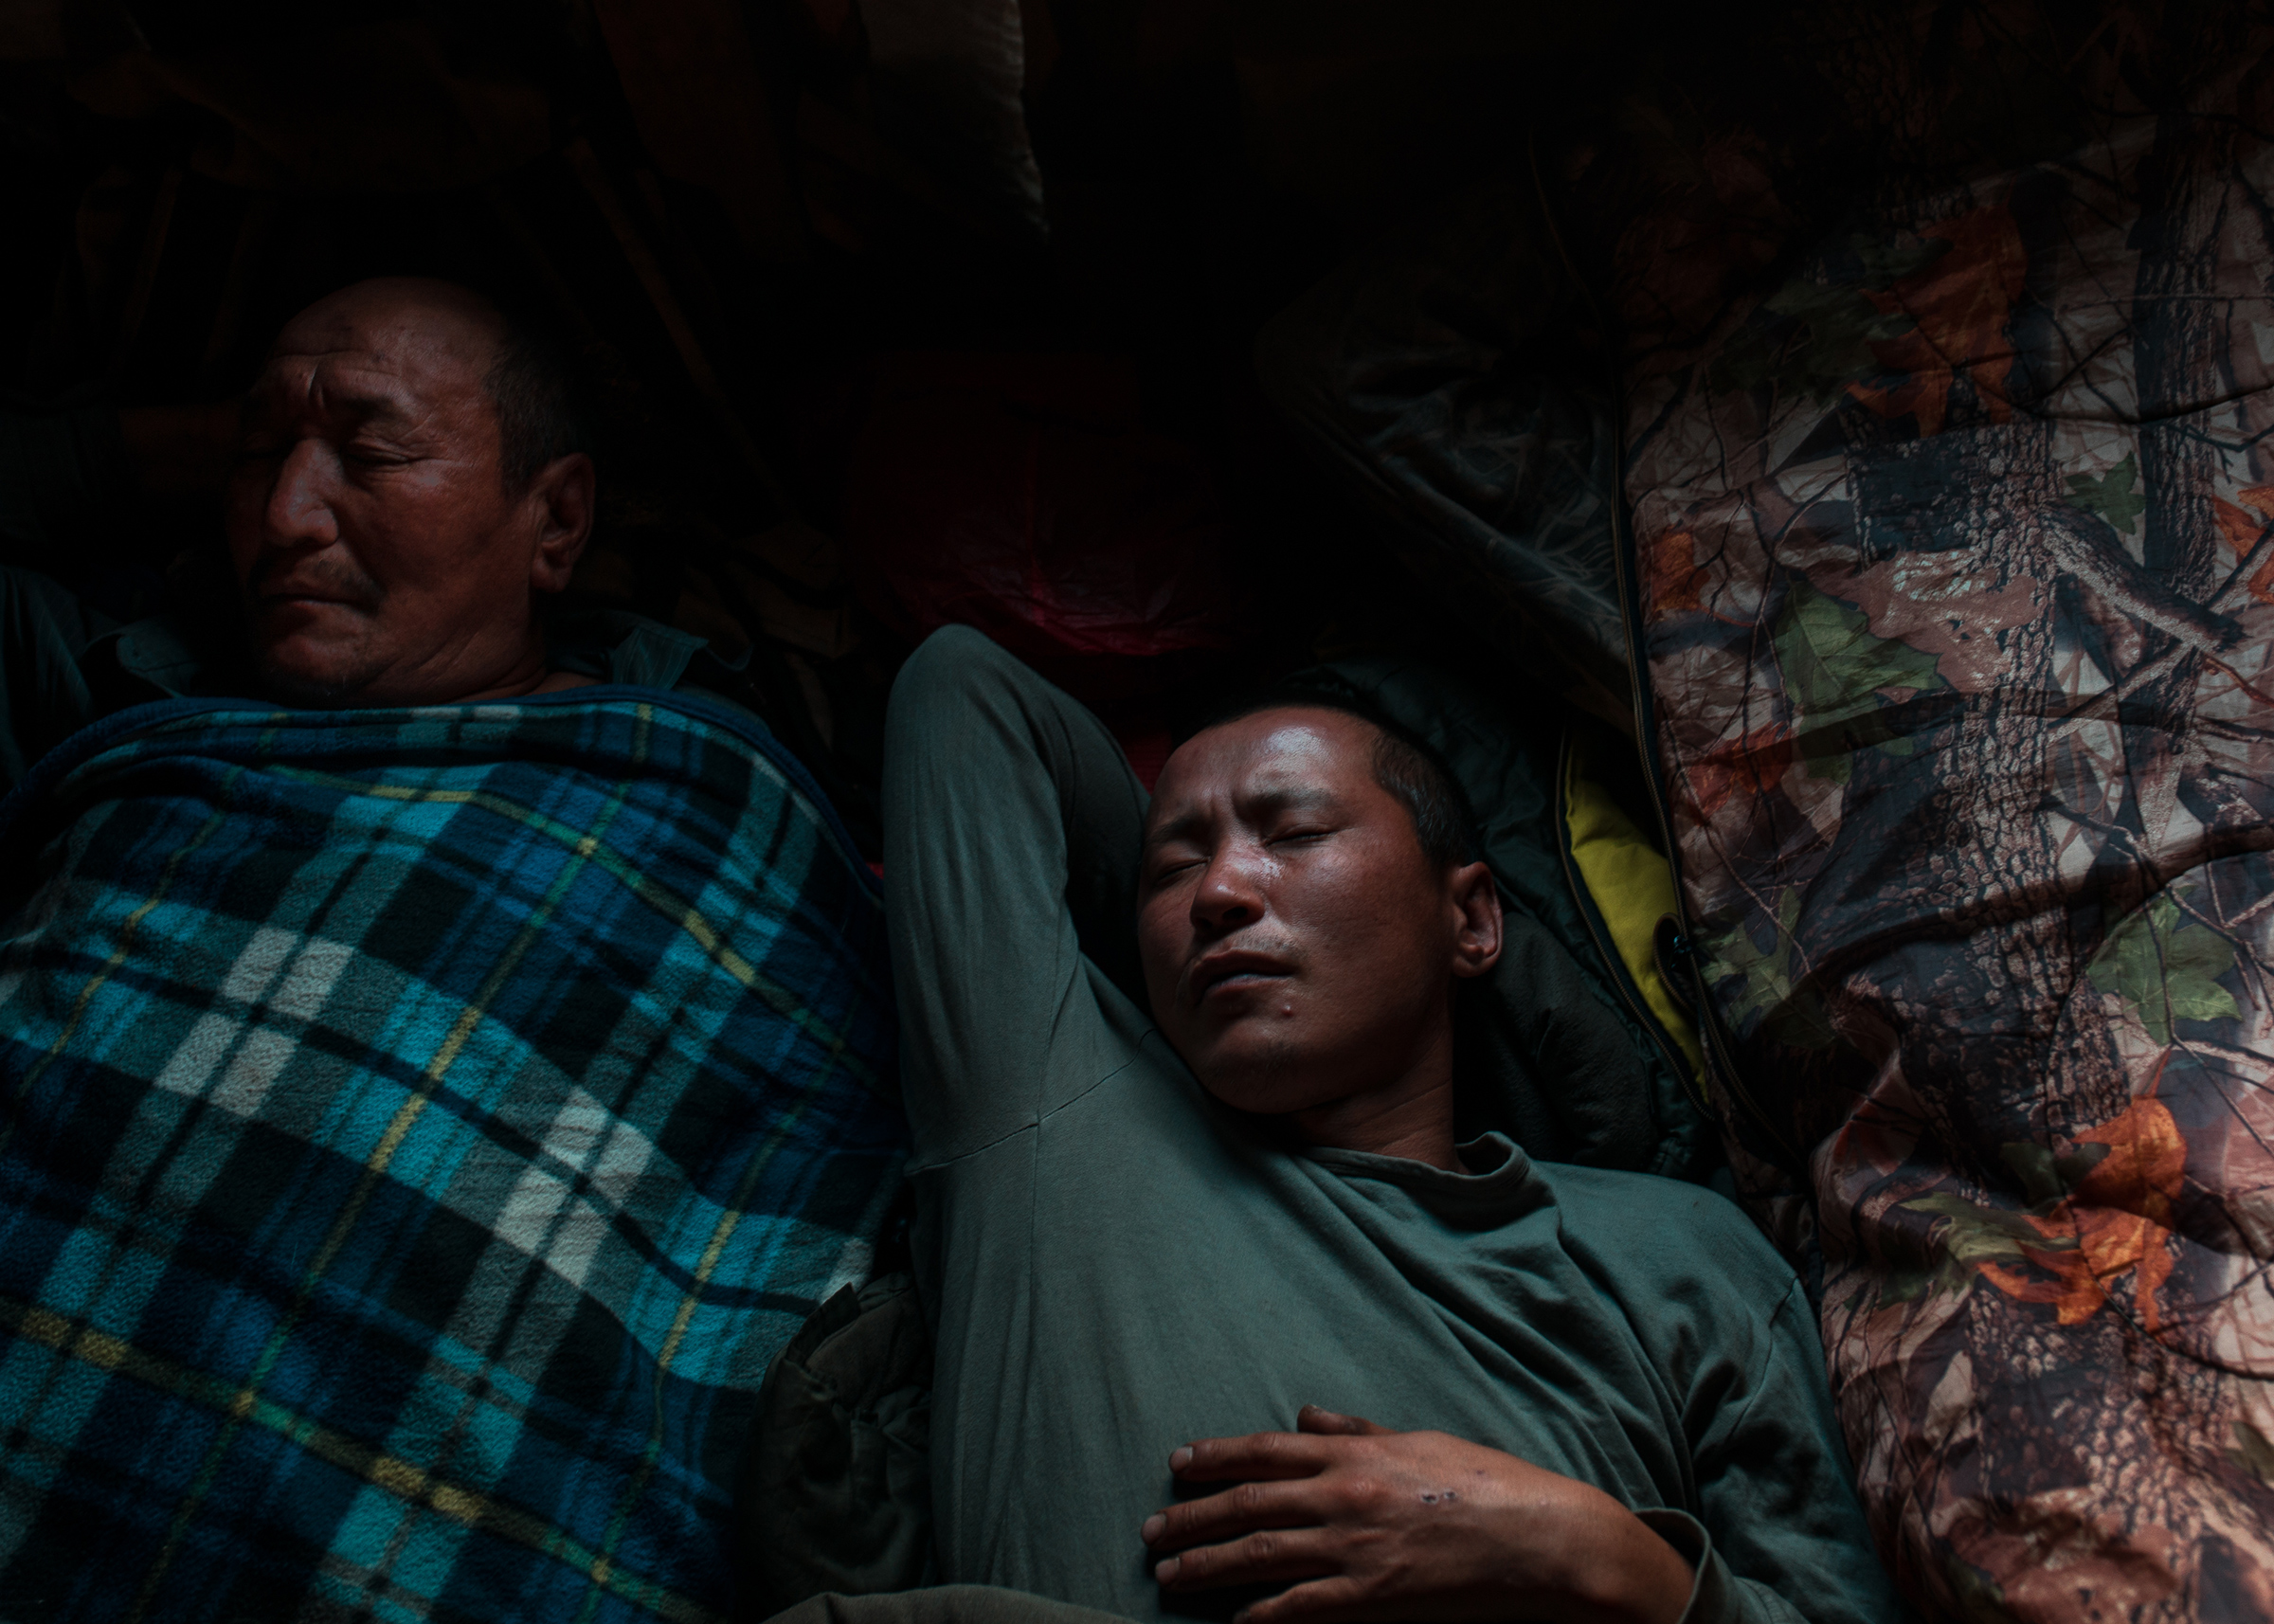 Local firefighting volunteers sleep in a small hut near the village of Magaras in the Gorny District of Russia.